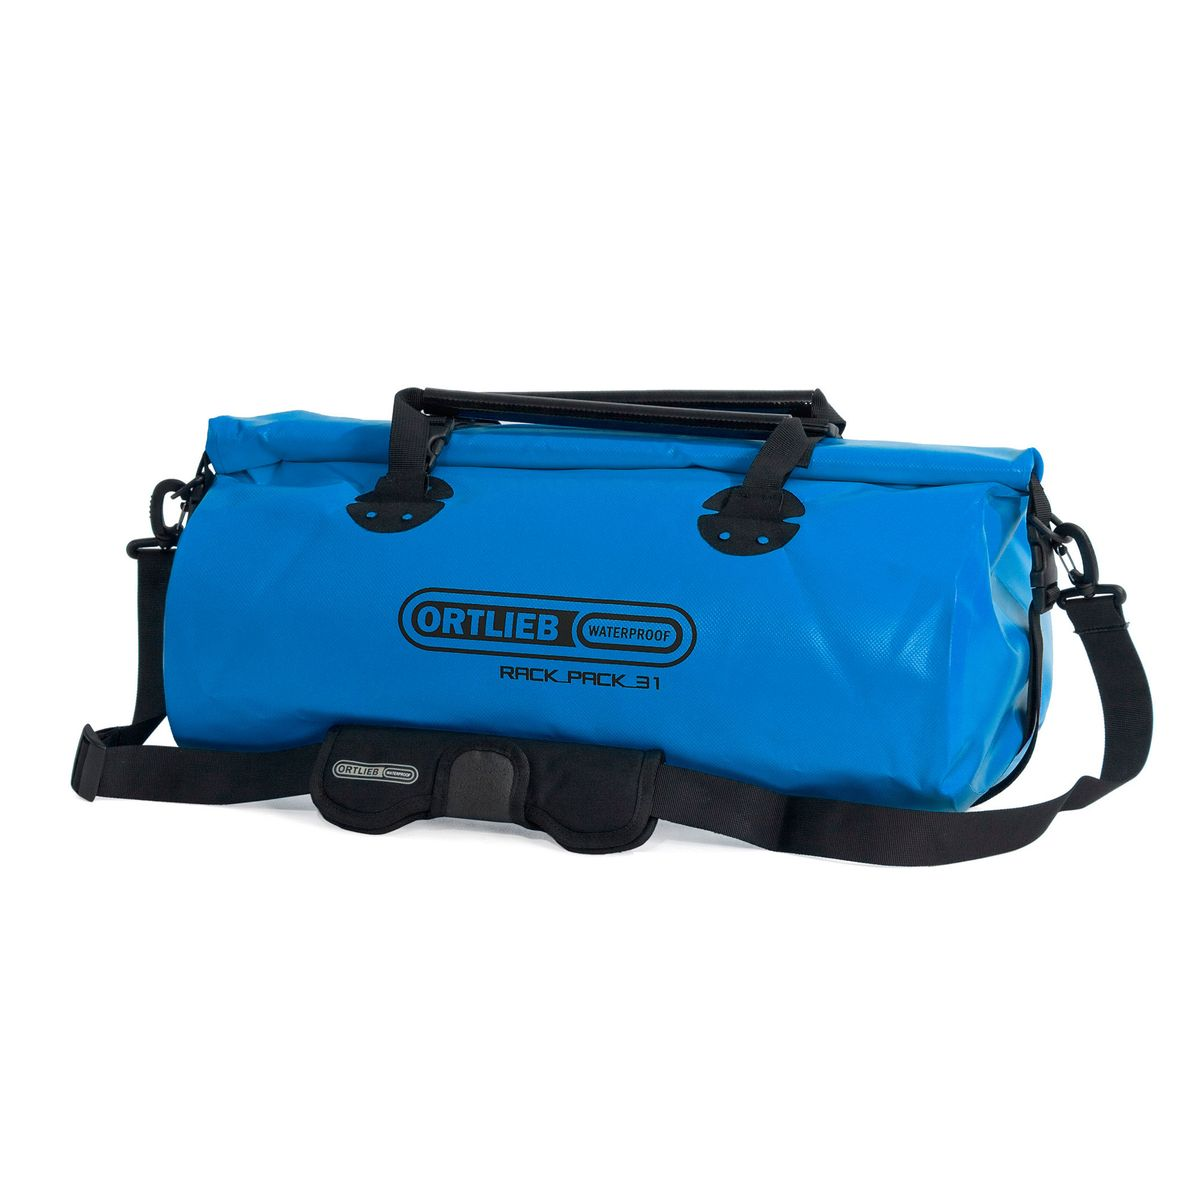 M 32 l Rack Pack travel bag